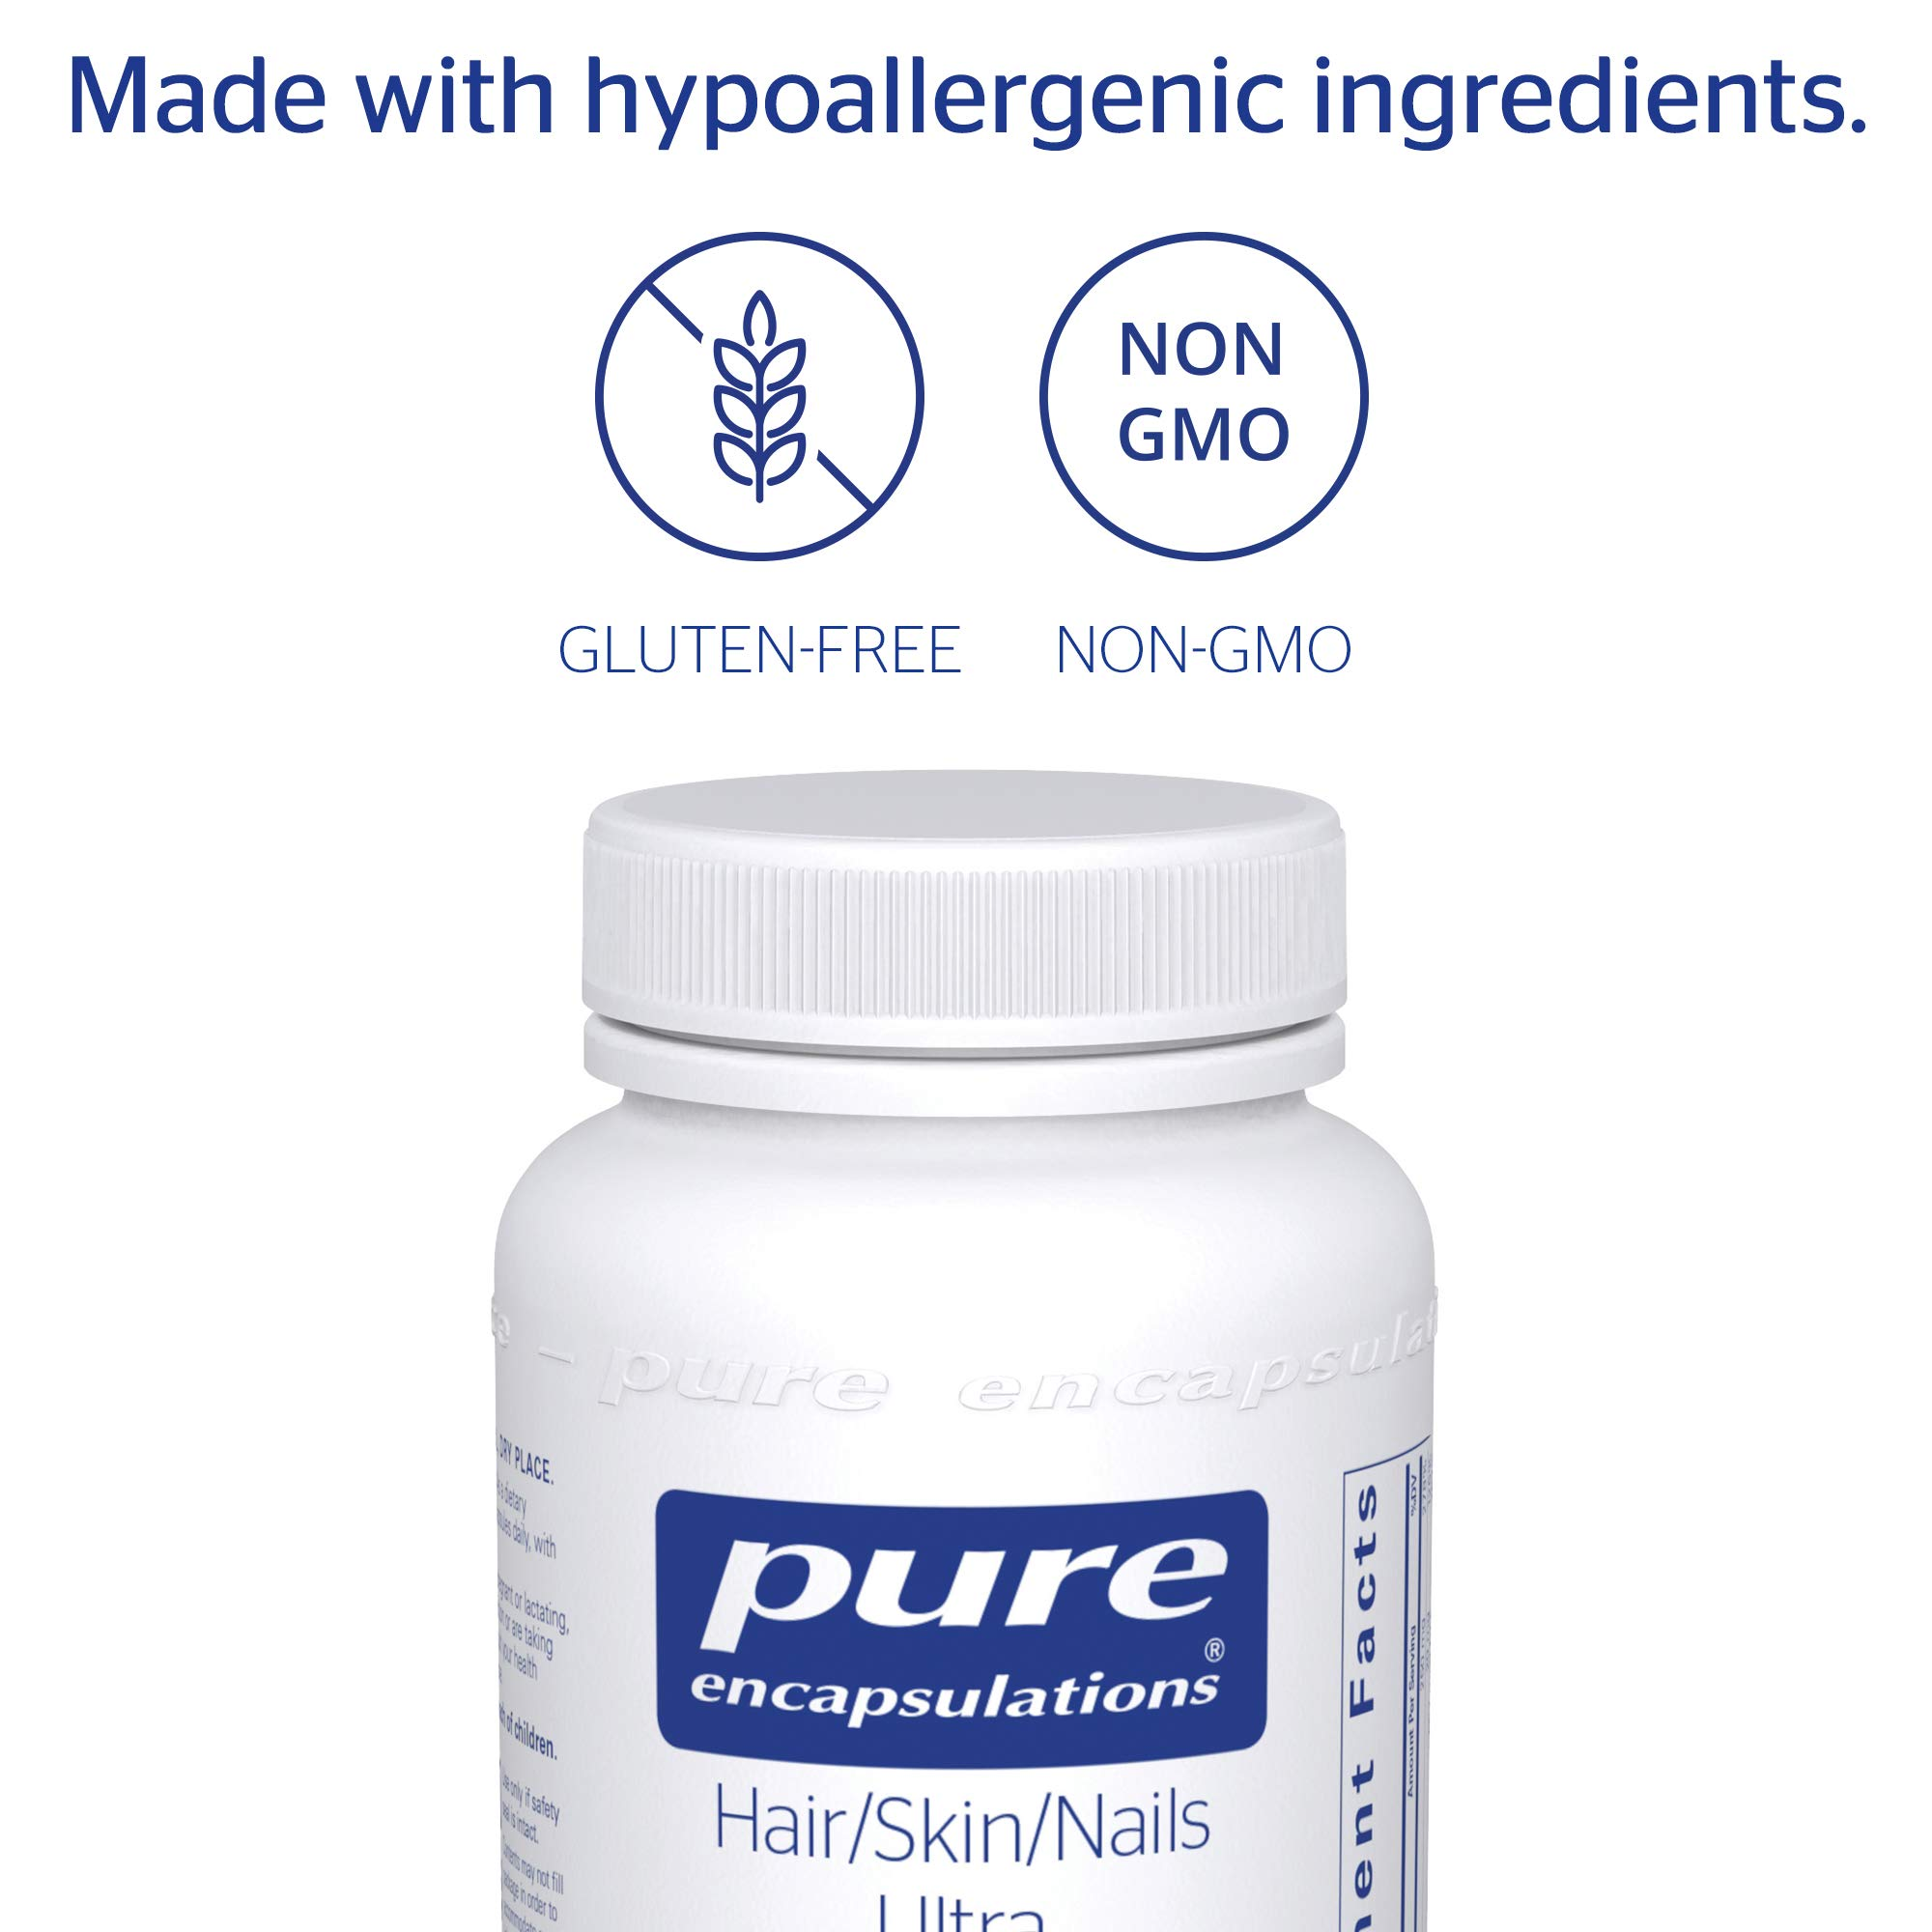 Pure Encapsulations - Hair/Skin/Nails Ultra - Hypoallergenic Supplement Supports Skin Elasticity, Hydration, Hair, and Nails* - 60 Capsules by Pure Encapsulations (Image #4)